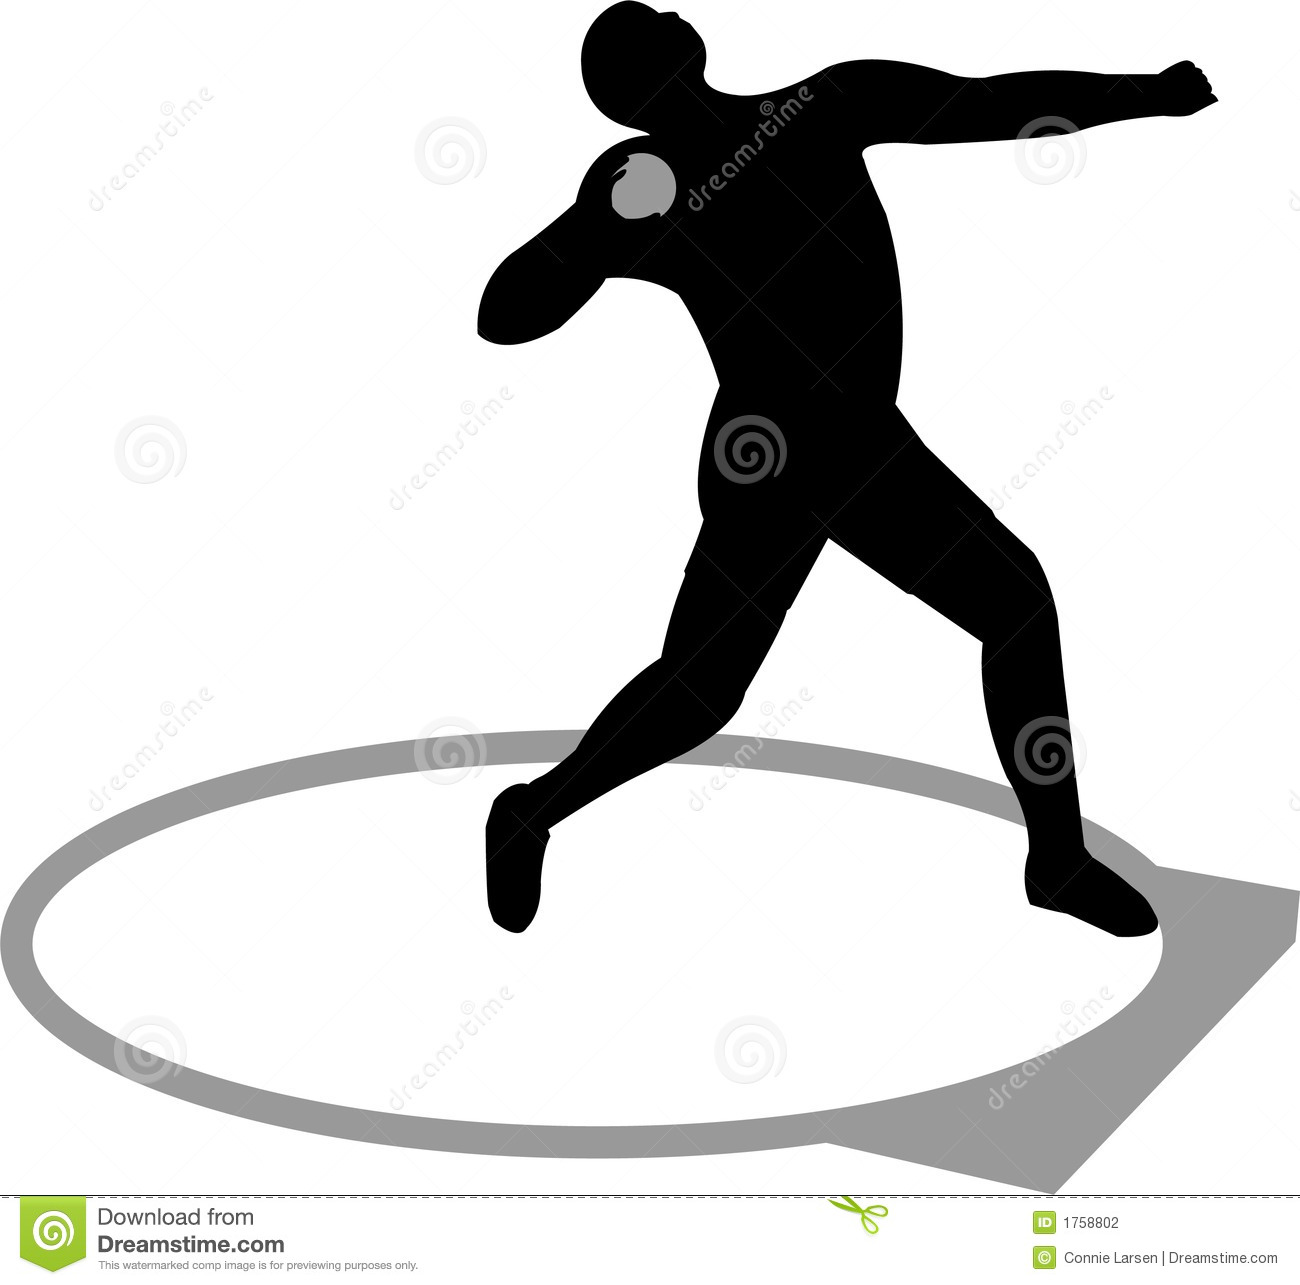 Clip art shot put thrower cliparts.